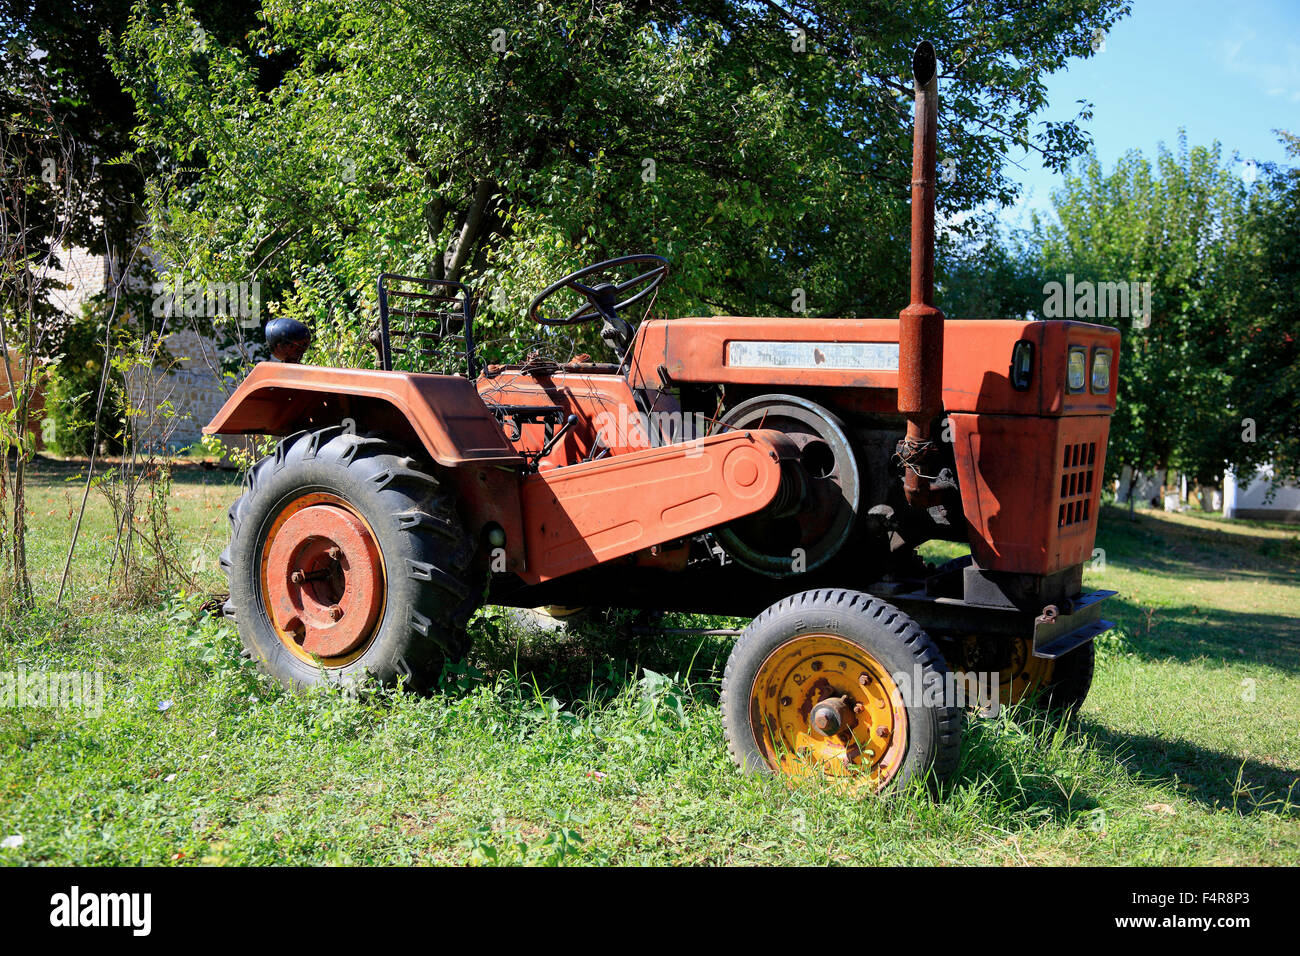 Chinese Antique Tractors : Old means of transportation stock photos